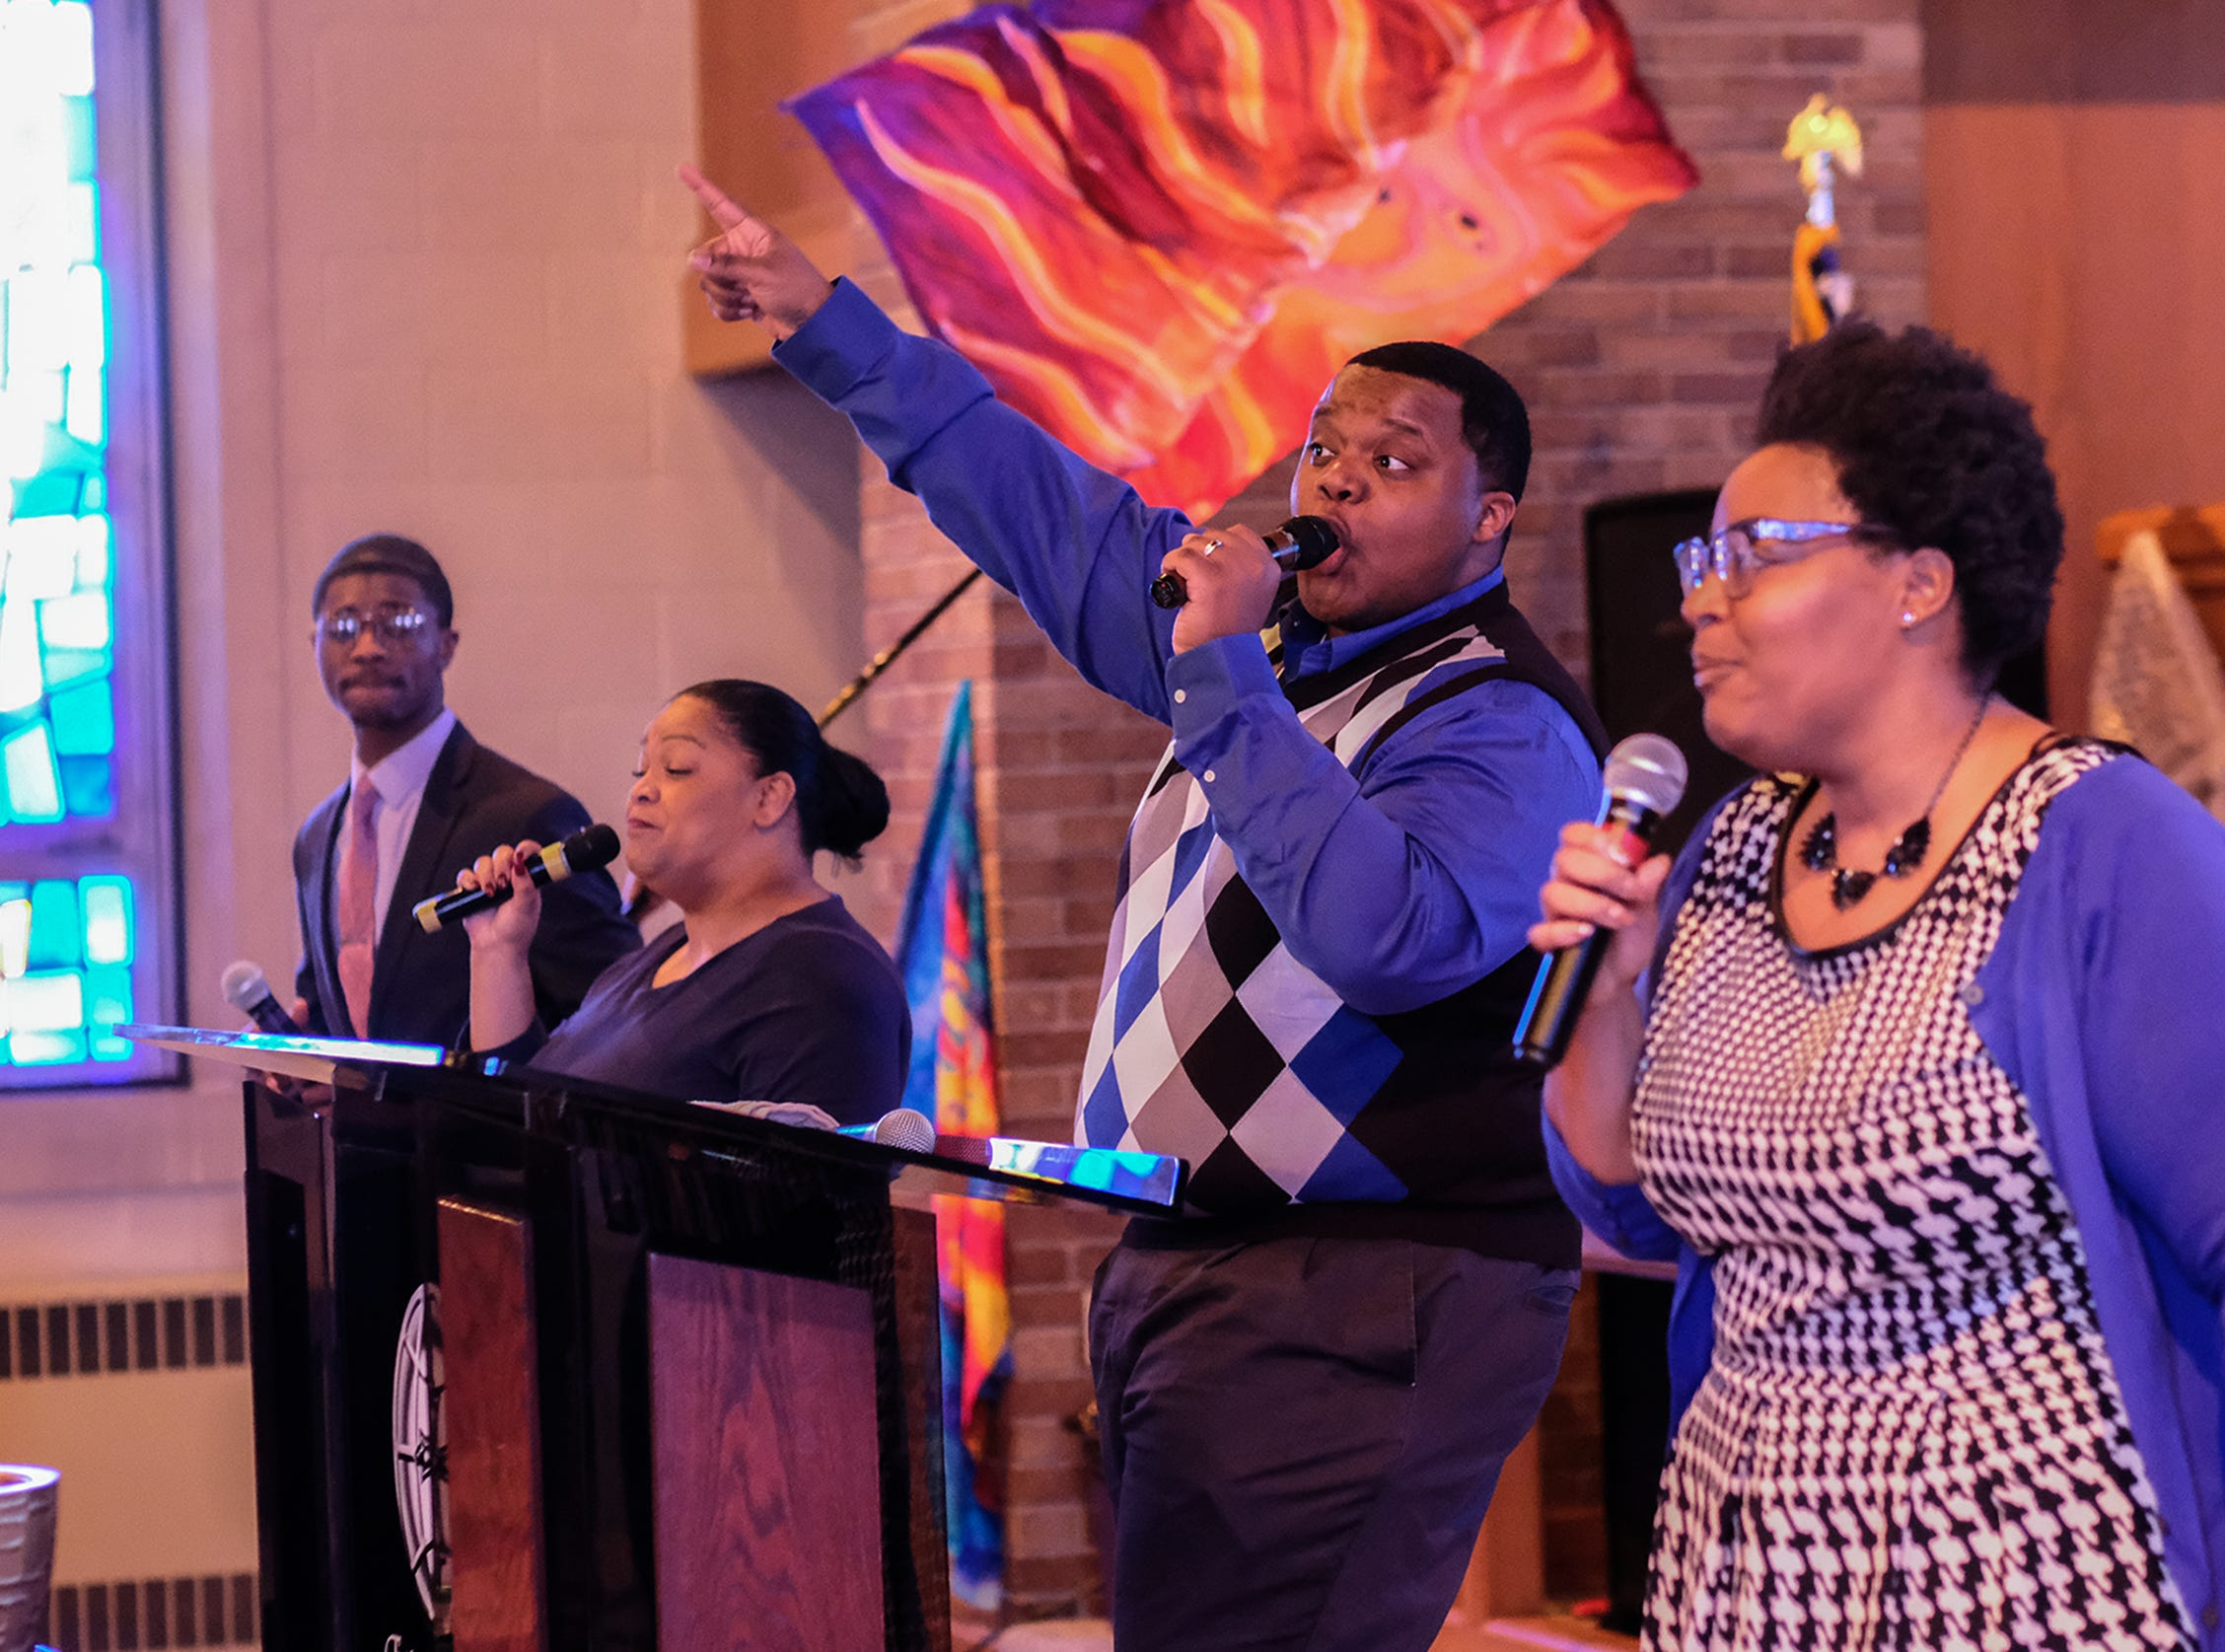 The Epicenter of Worship choir leads the service in song Sunday, Jan. 20, 2019.